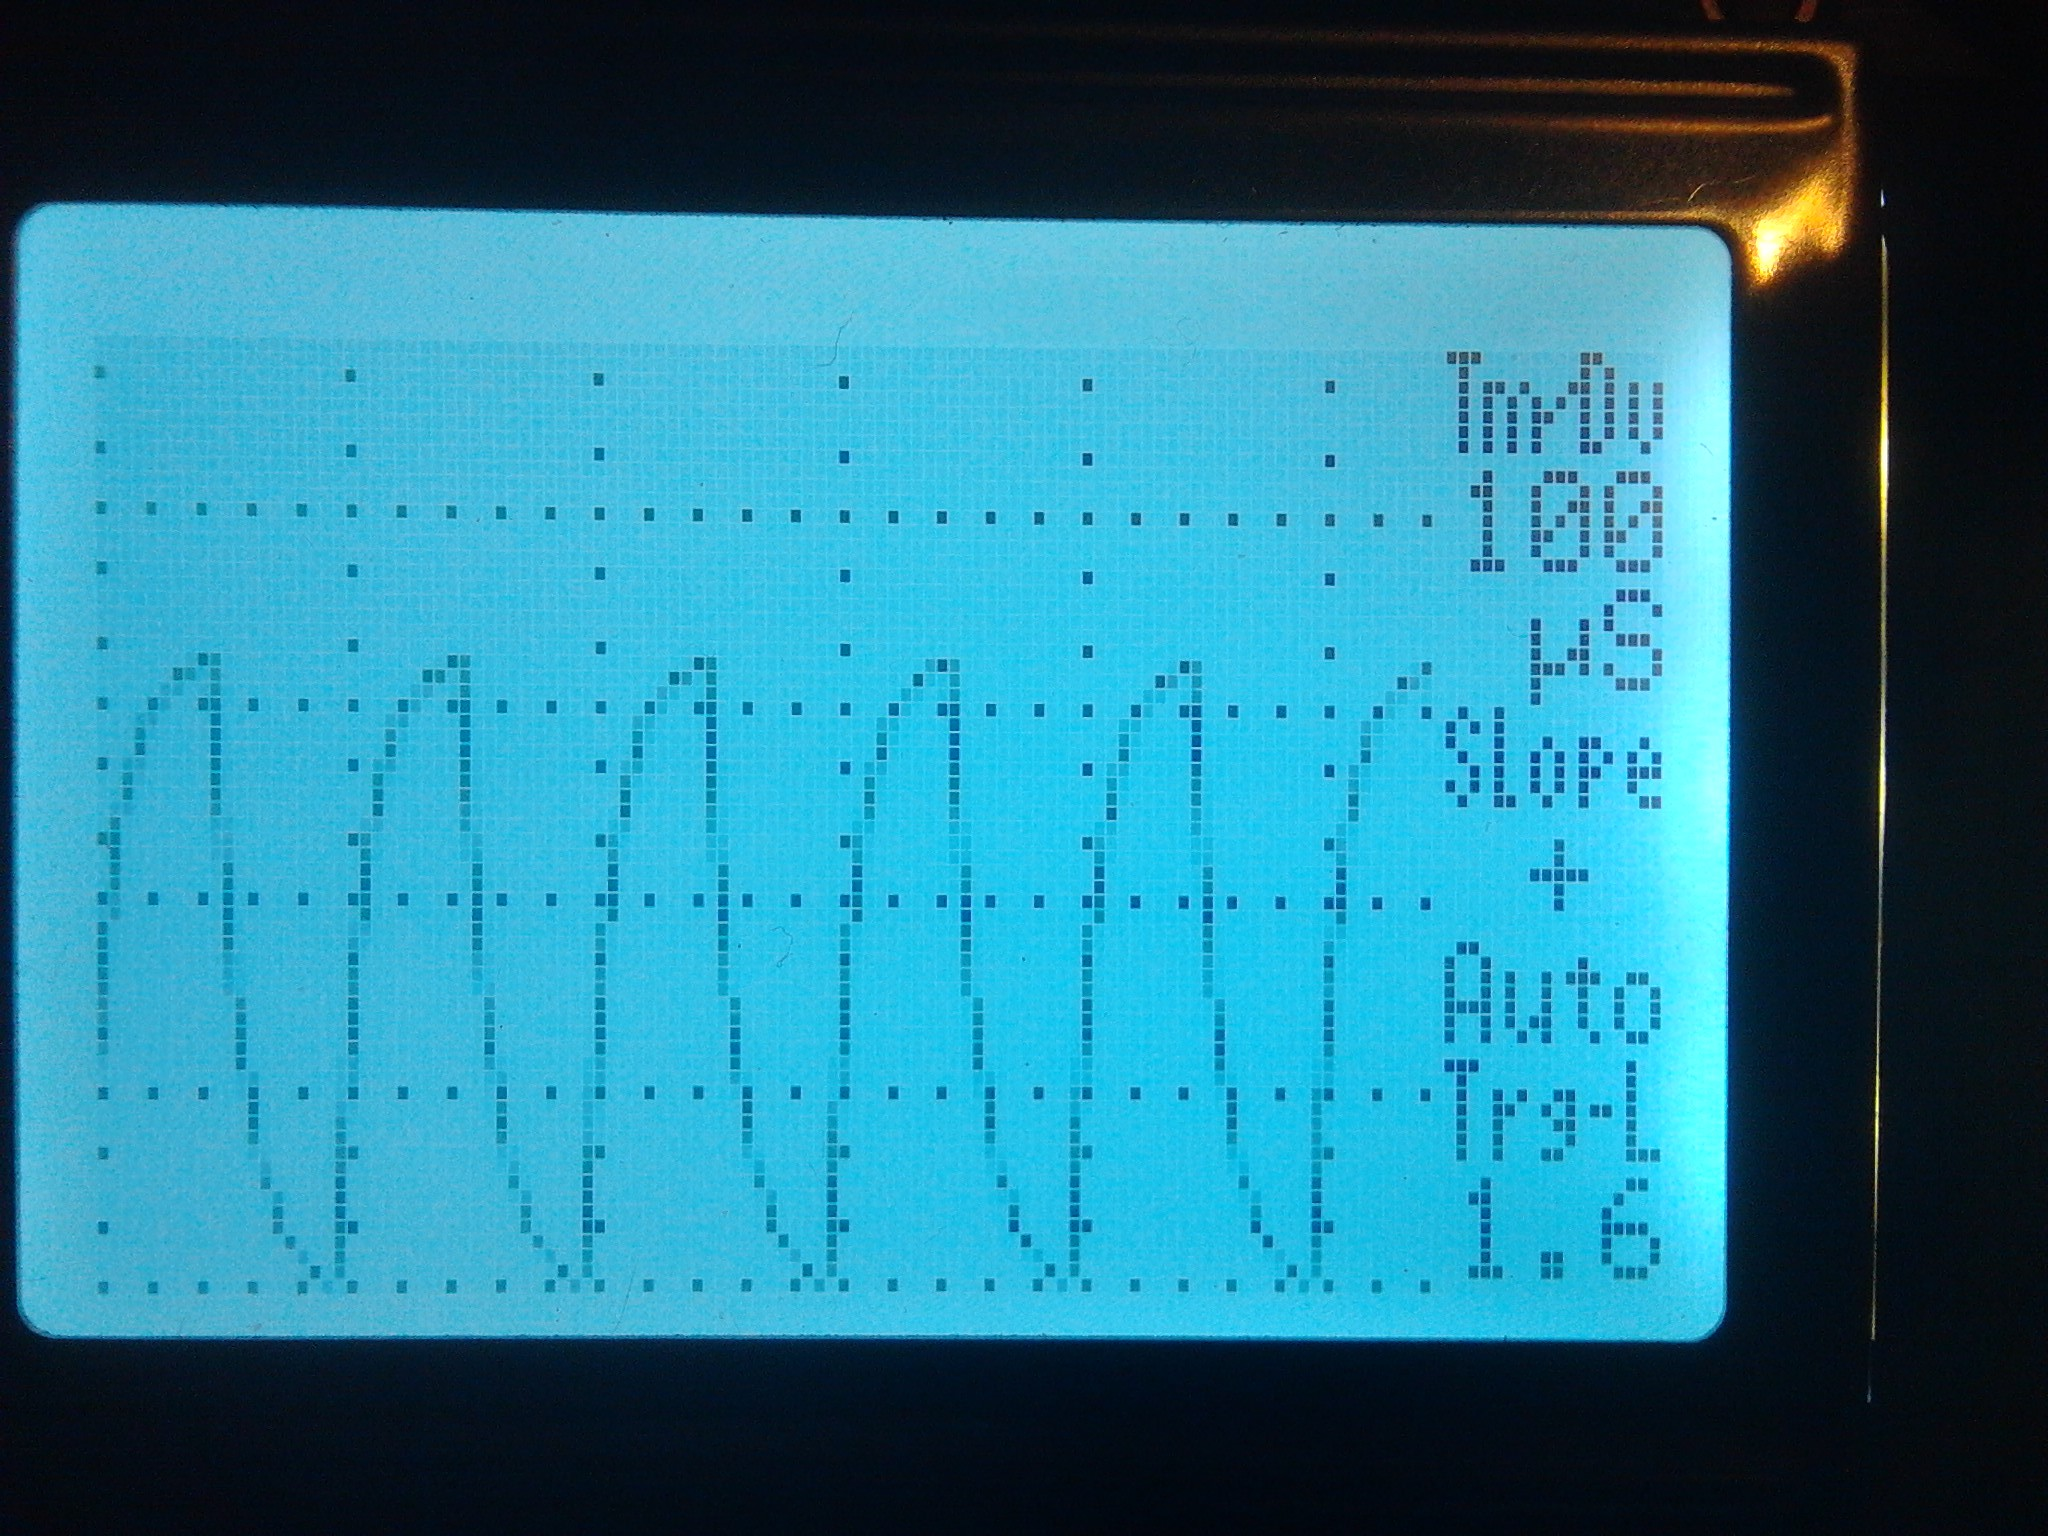 Multi Channel High Frequency Pwm With Registers And Phase Shift Wiringpi Set Clock Here Is Photo Of Oscilloscope Verifying The 10khz